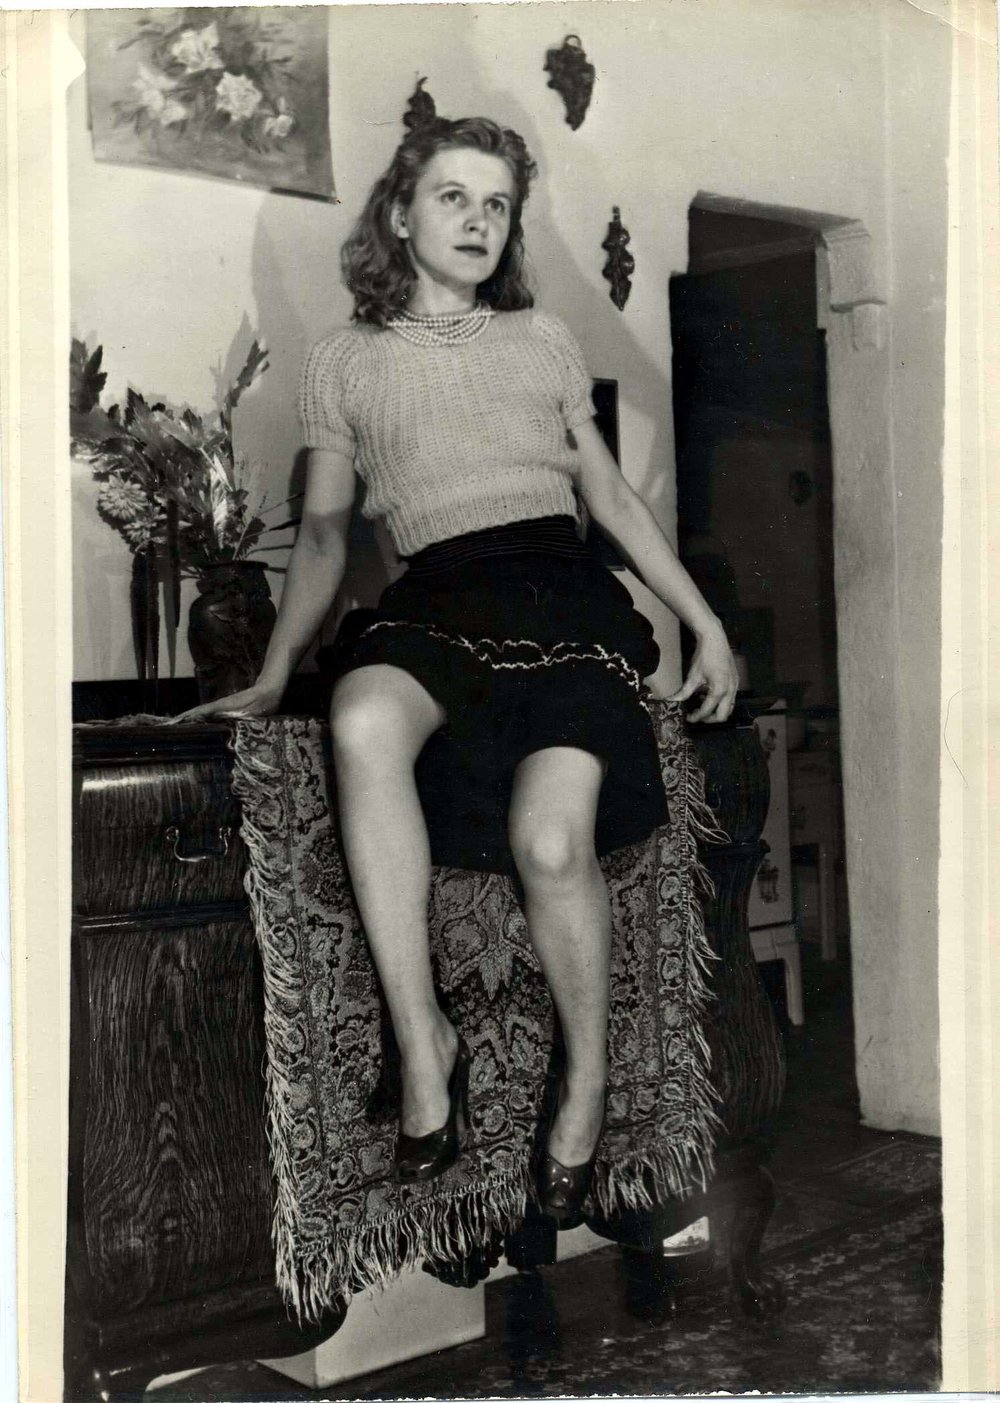 1.         Eugene Von Bruenchenhein (American, 1910-1983).  Untitled (Marie perched on table, interior view of home) , n.d. Gelatin silver print, 7 x 5 in. Intuit: The Center for Intuitive and Outsider Art, gift of Lewis and Jean Greenblatt, 2005.4.11